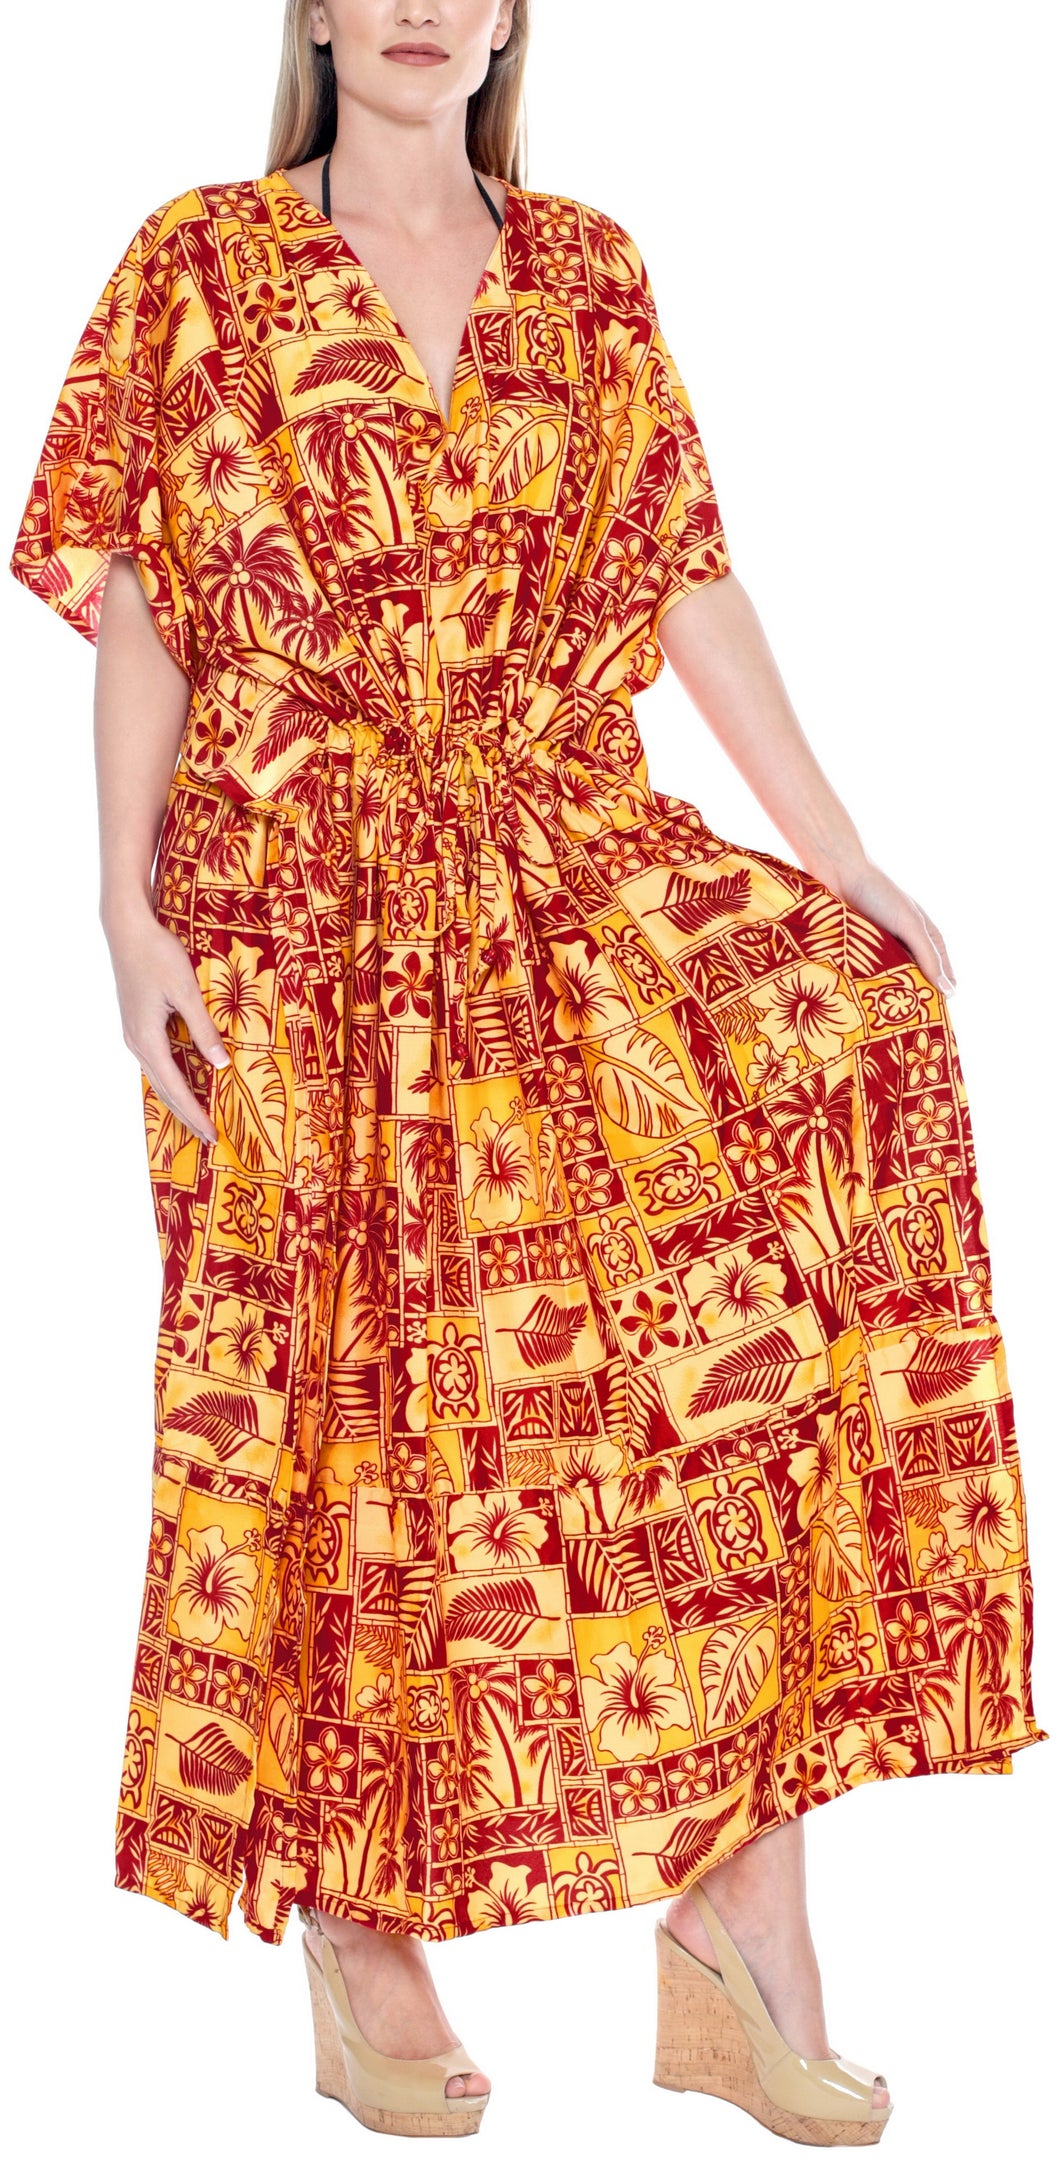 la-leela-lounge-caftan-likre-printed-autumn-winter-plus-size-boho-maxi-kimono-loose-lounger-drawstring-aloha-over-size-red